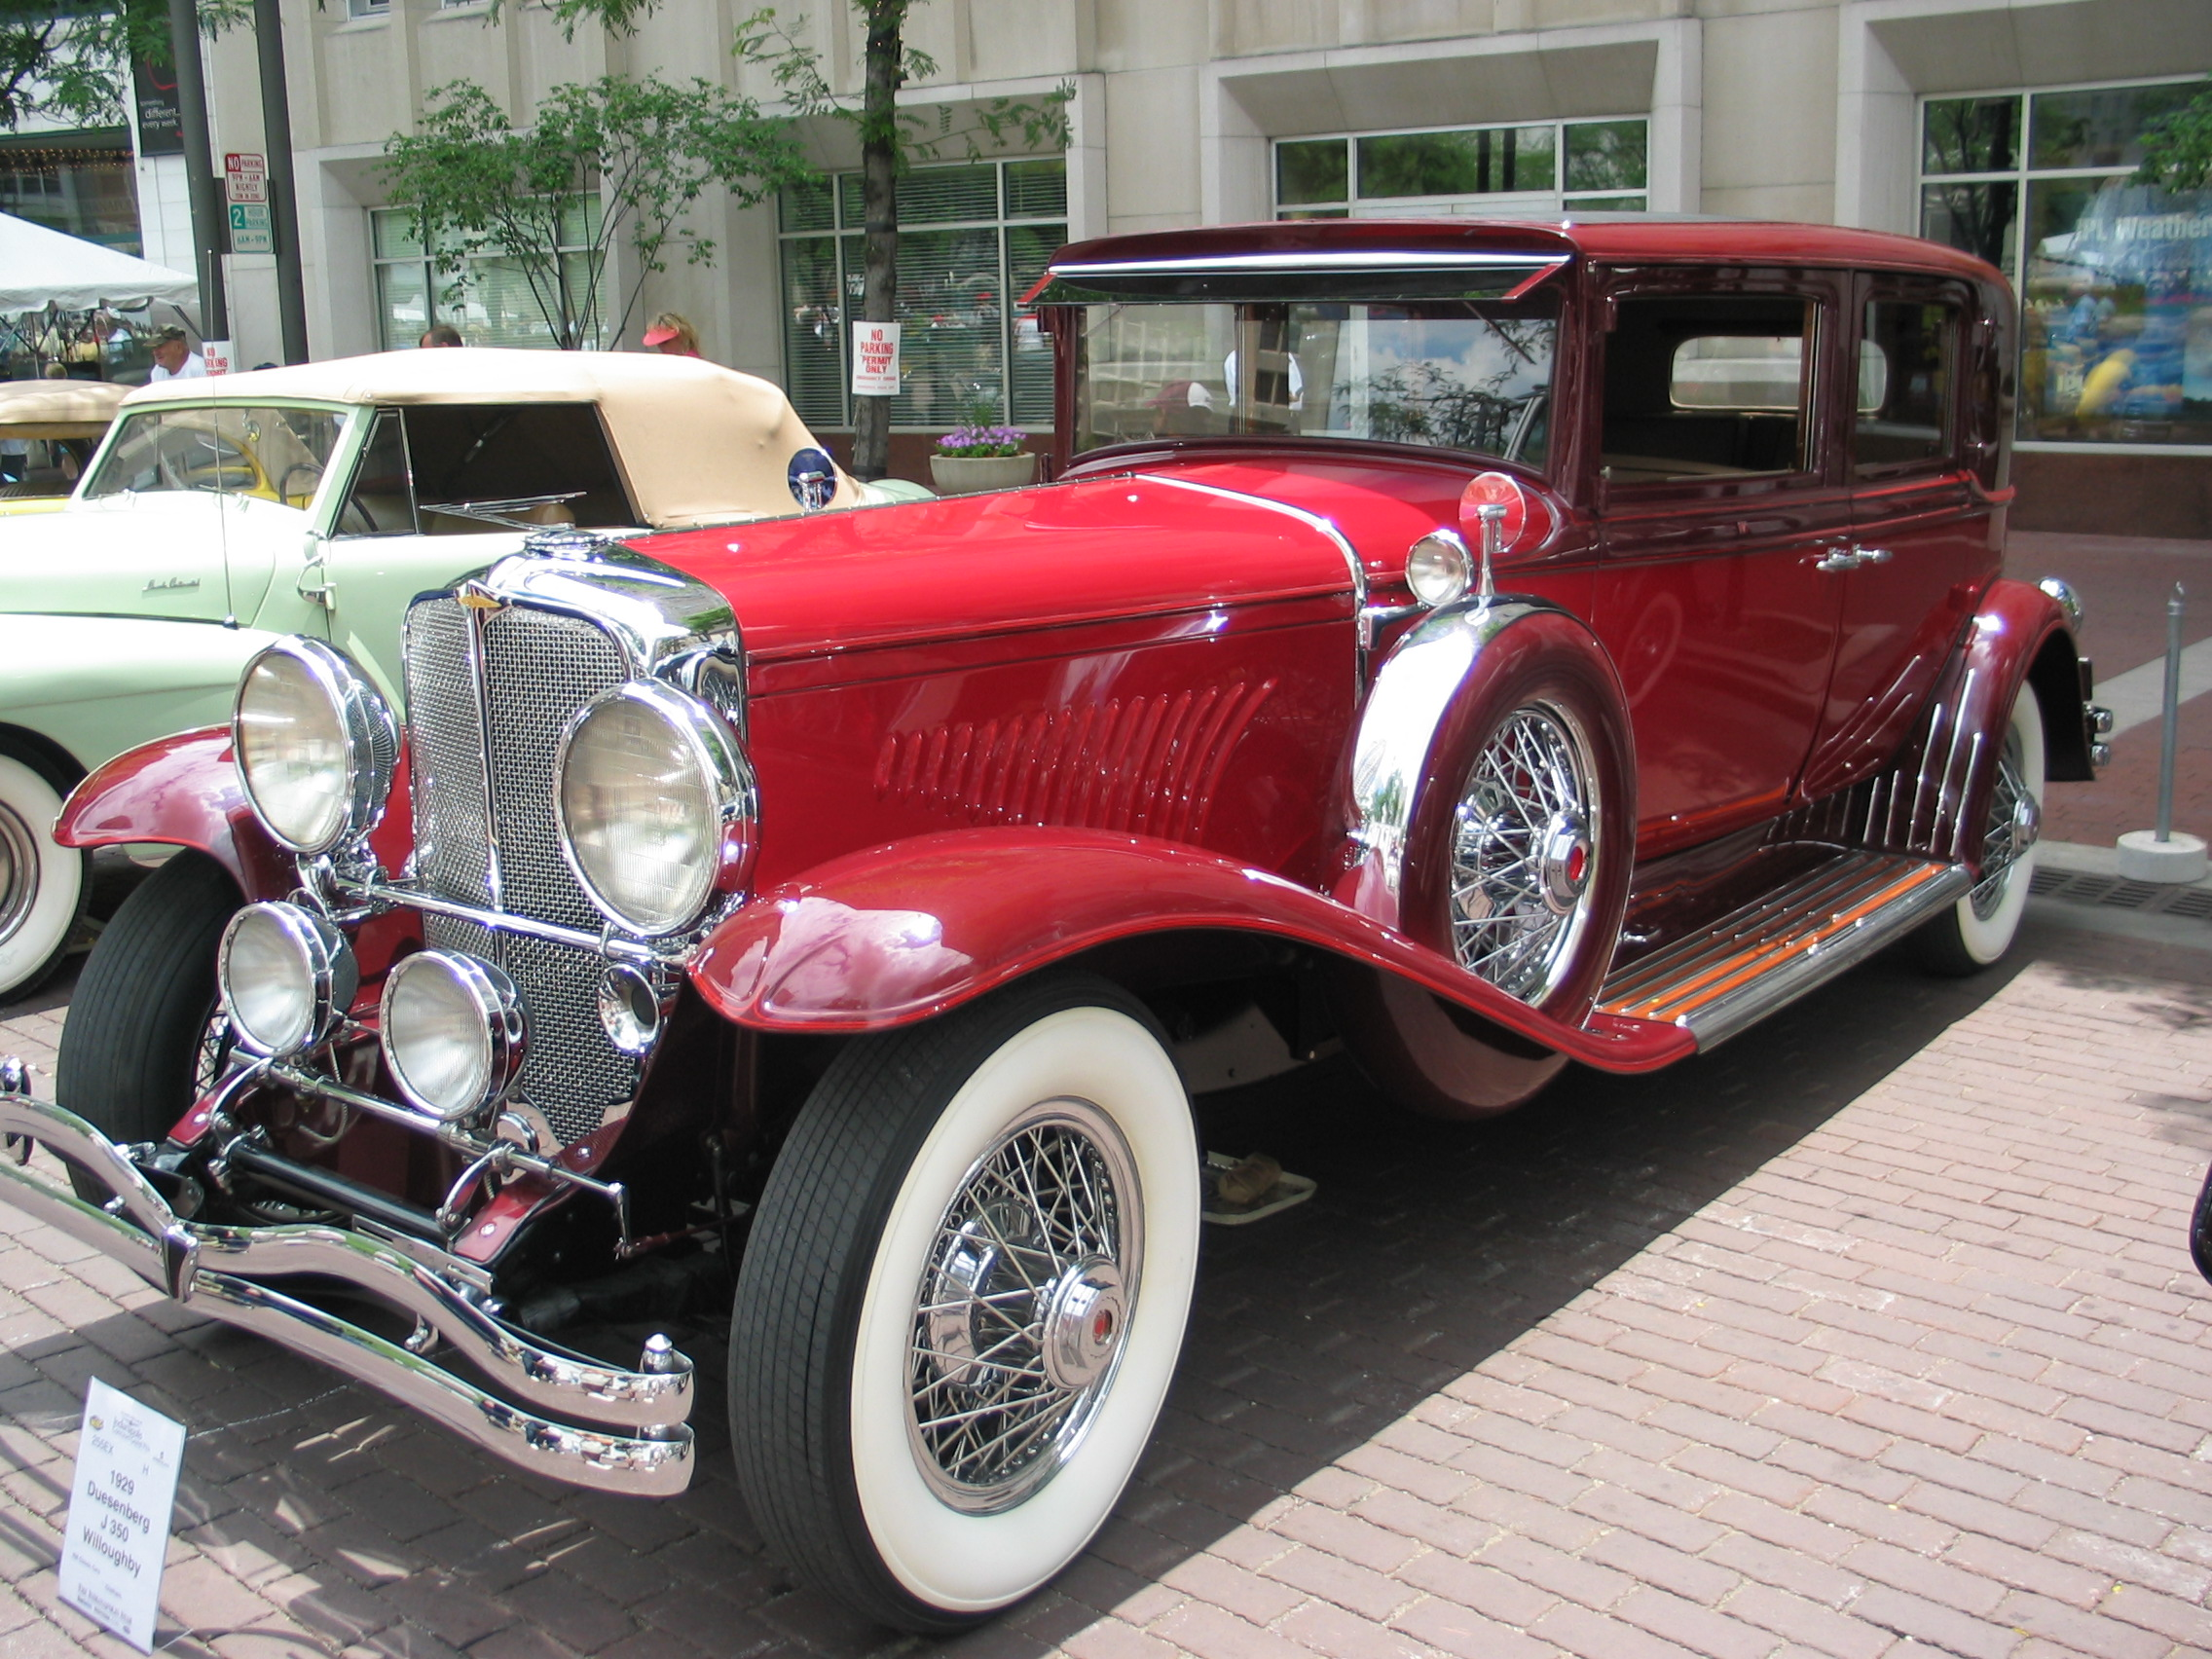 File:Duesenberg.jpg - Wikimedia Commons